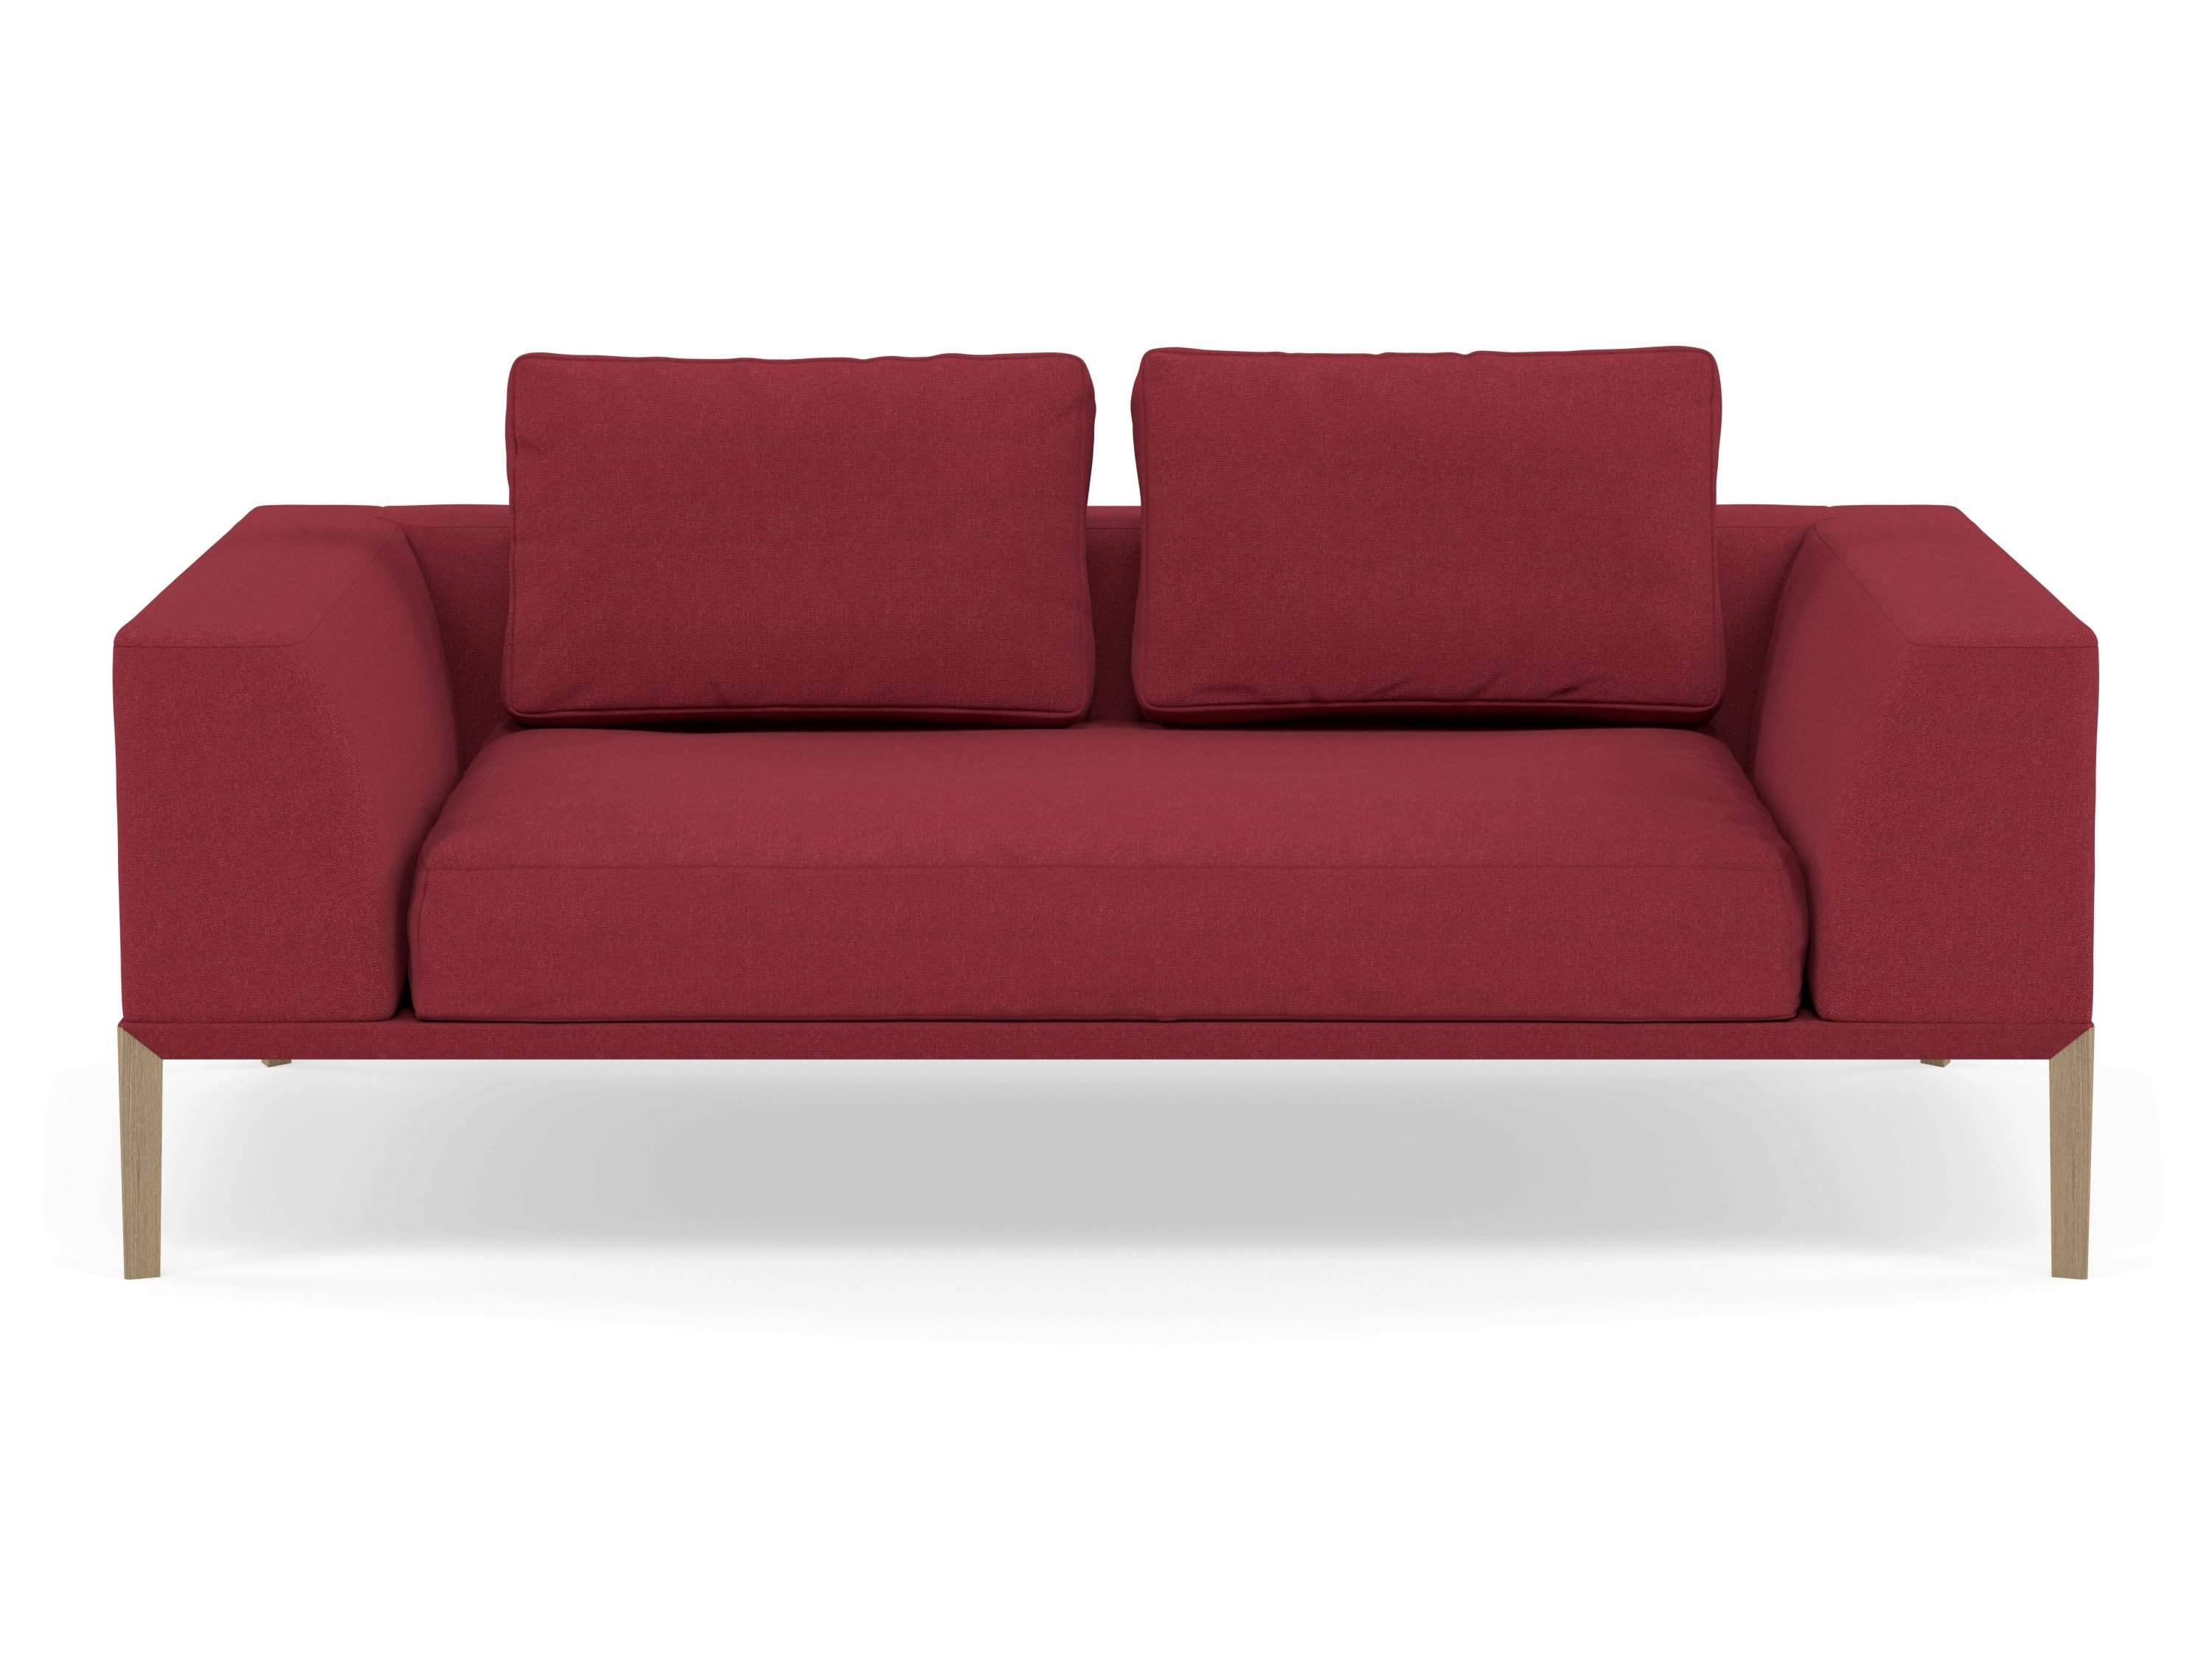 Modern 2 Seater Sofa with 2 Armrests in Rasberry Red Fabric